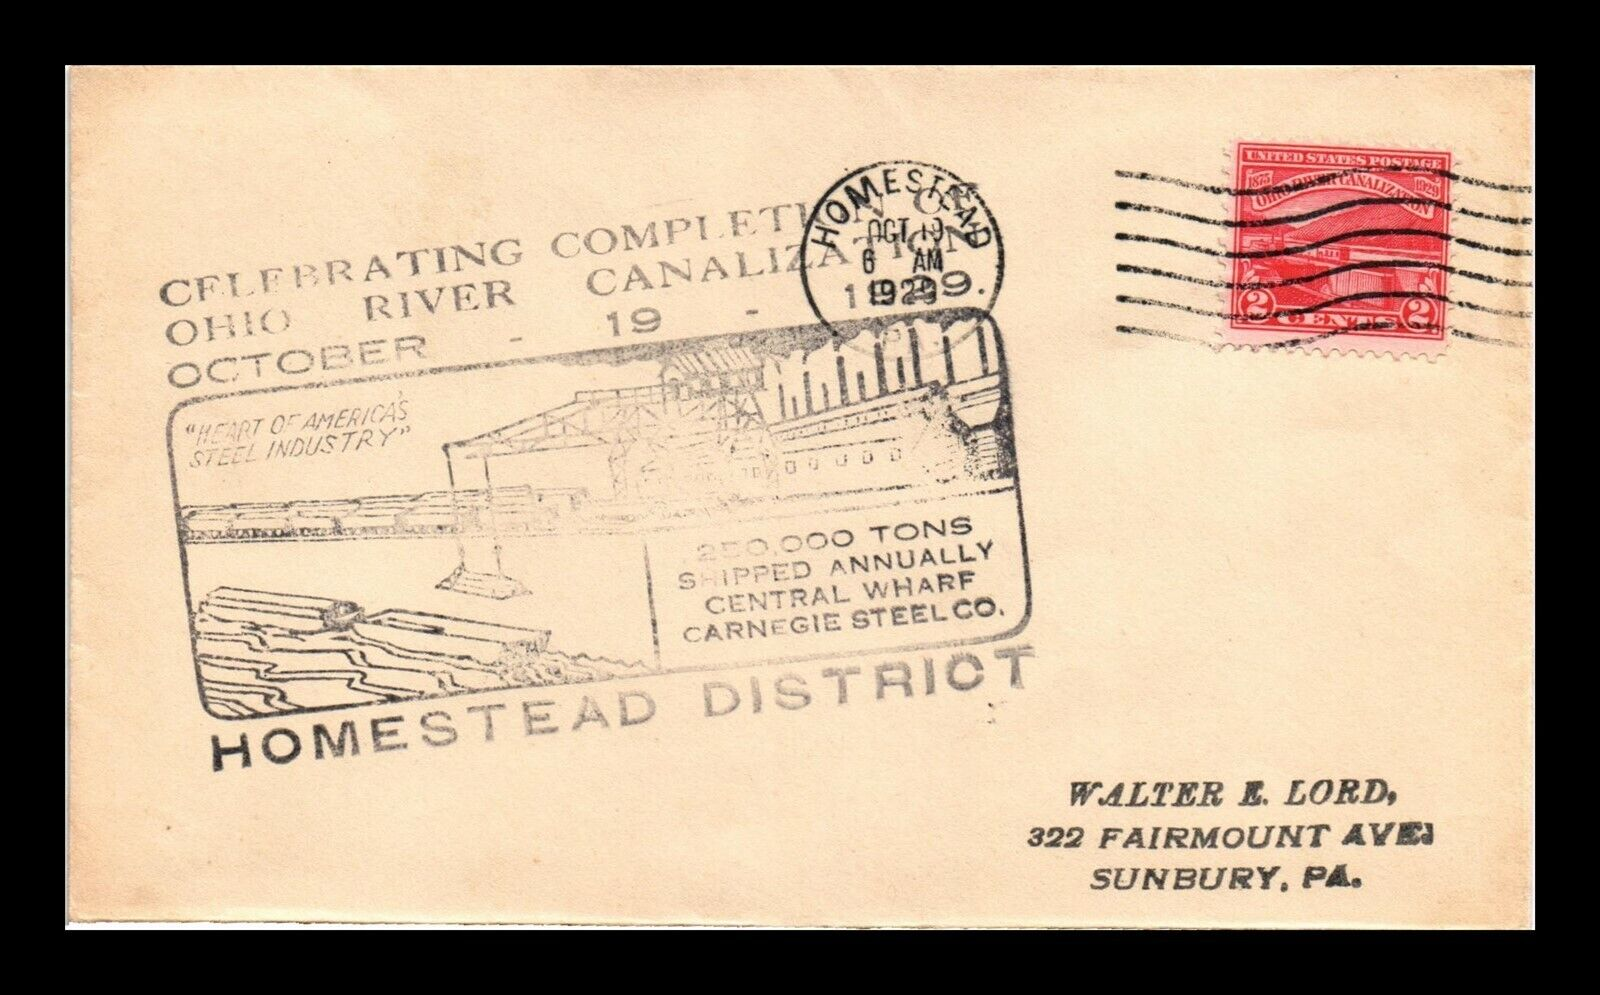 DR JIM STAMPS US HOMESTEAD DISTRICT OHIO RIVER CANALIZATION FDC COVER SCOTT 681 - $0.25